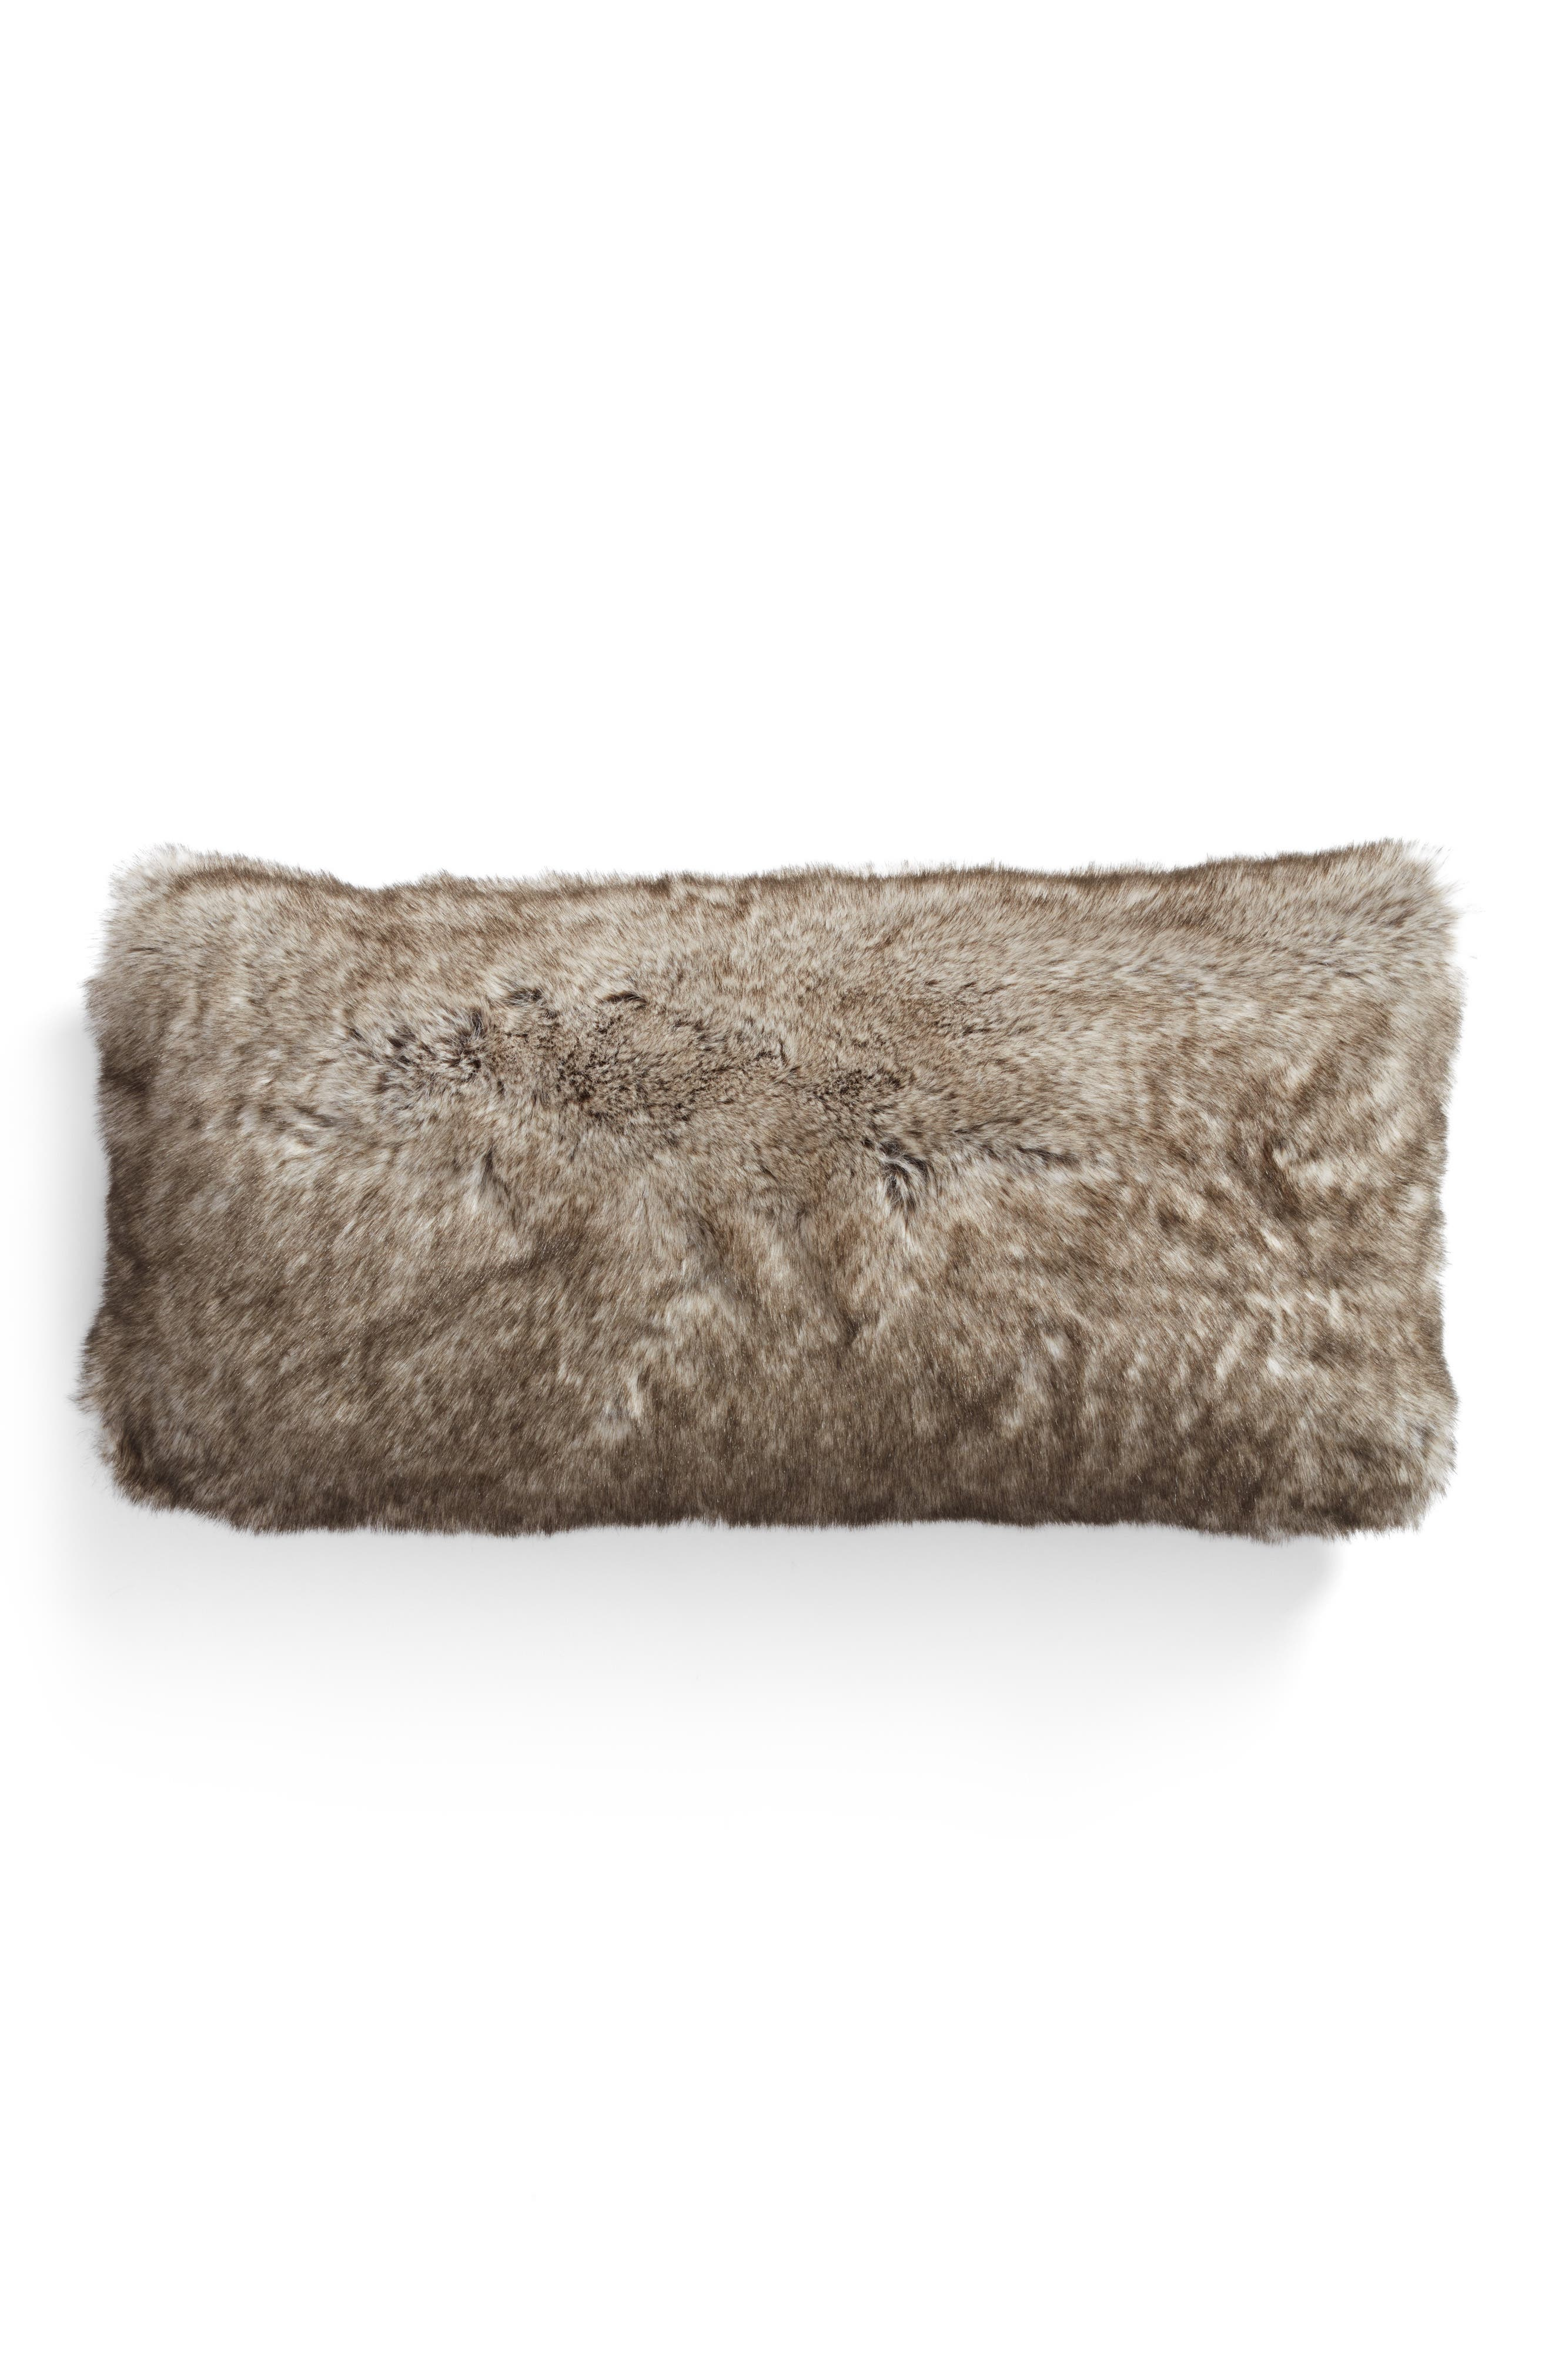 Cuddle Up Faux Fur Accent Pillow,                             Alternate thumbnail 2, color,                             New Natural Tipped